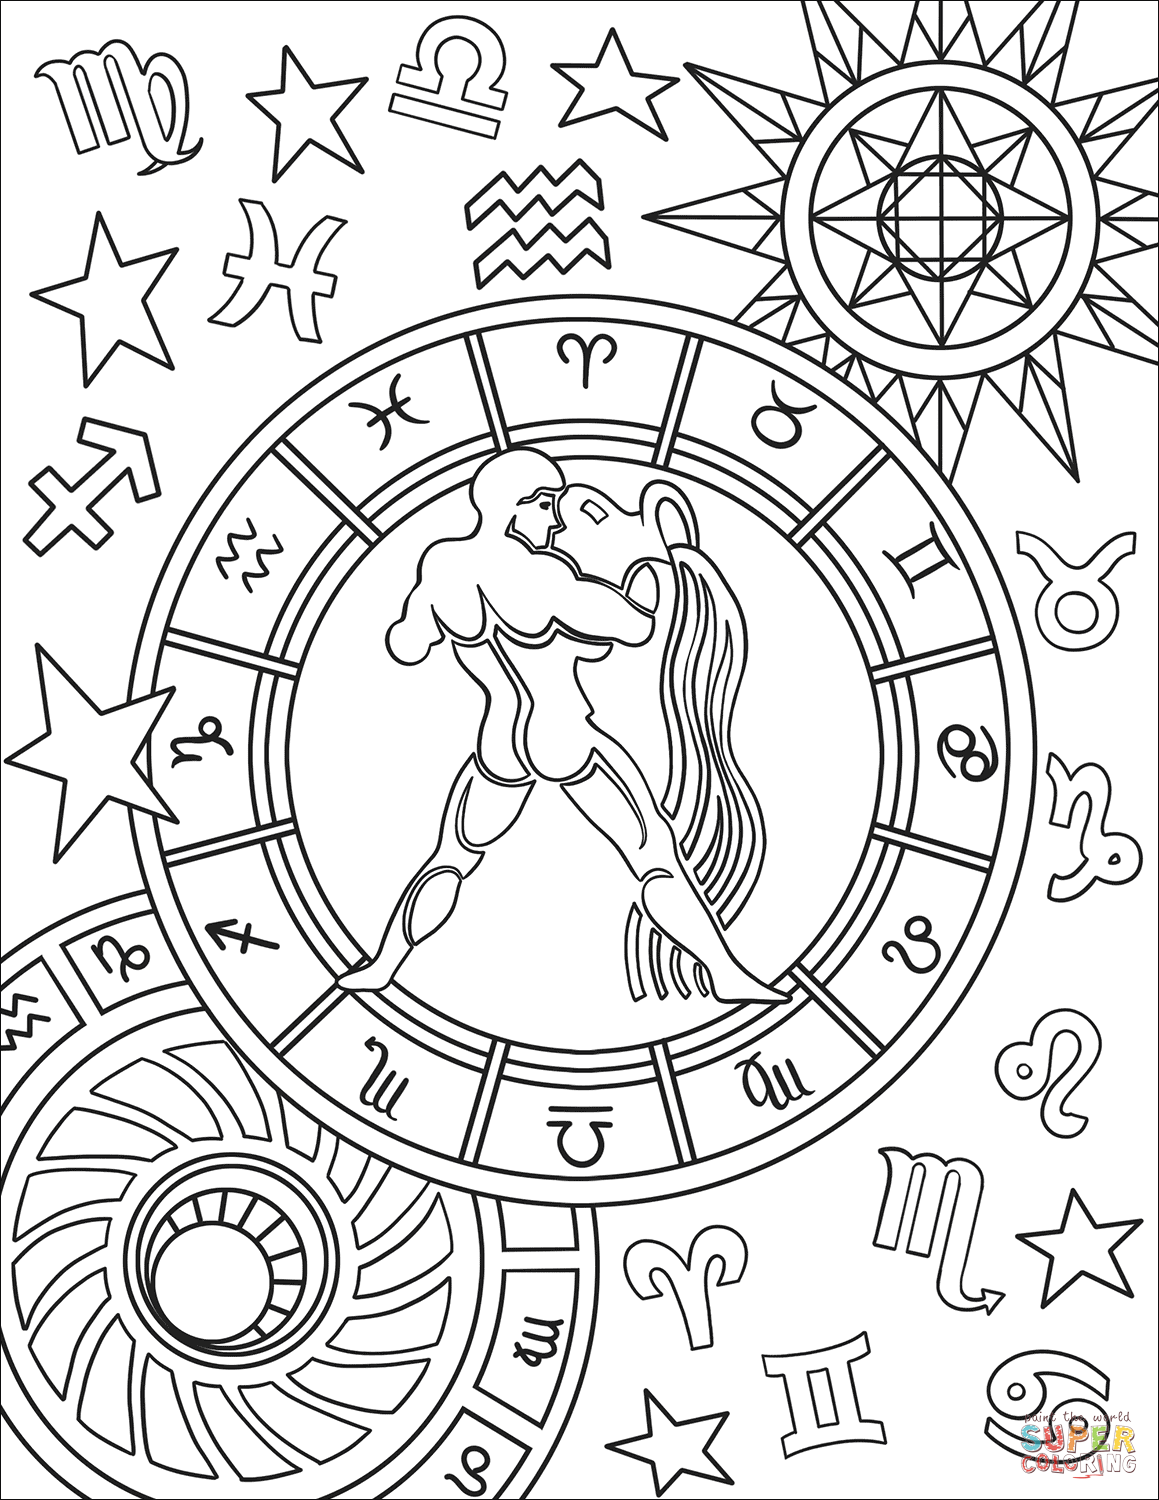 zodiac coloring pages capricorn zodiac sign coloring page free printable pages zodiac coloring